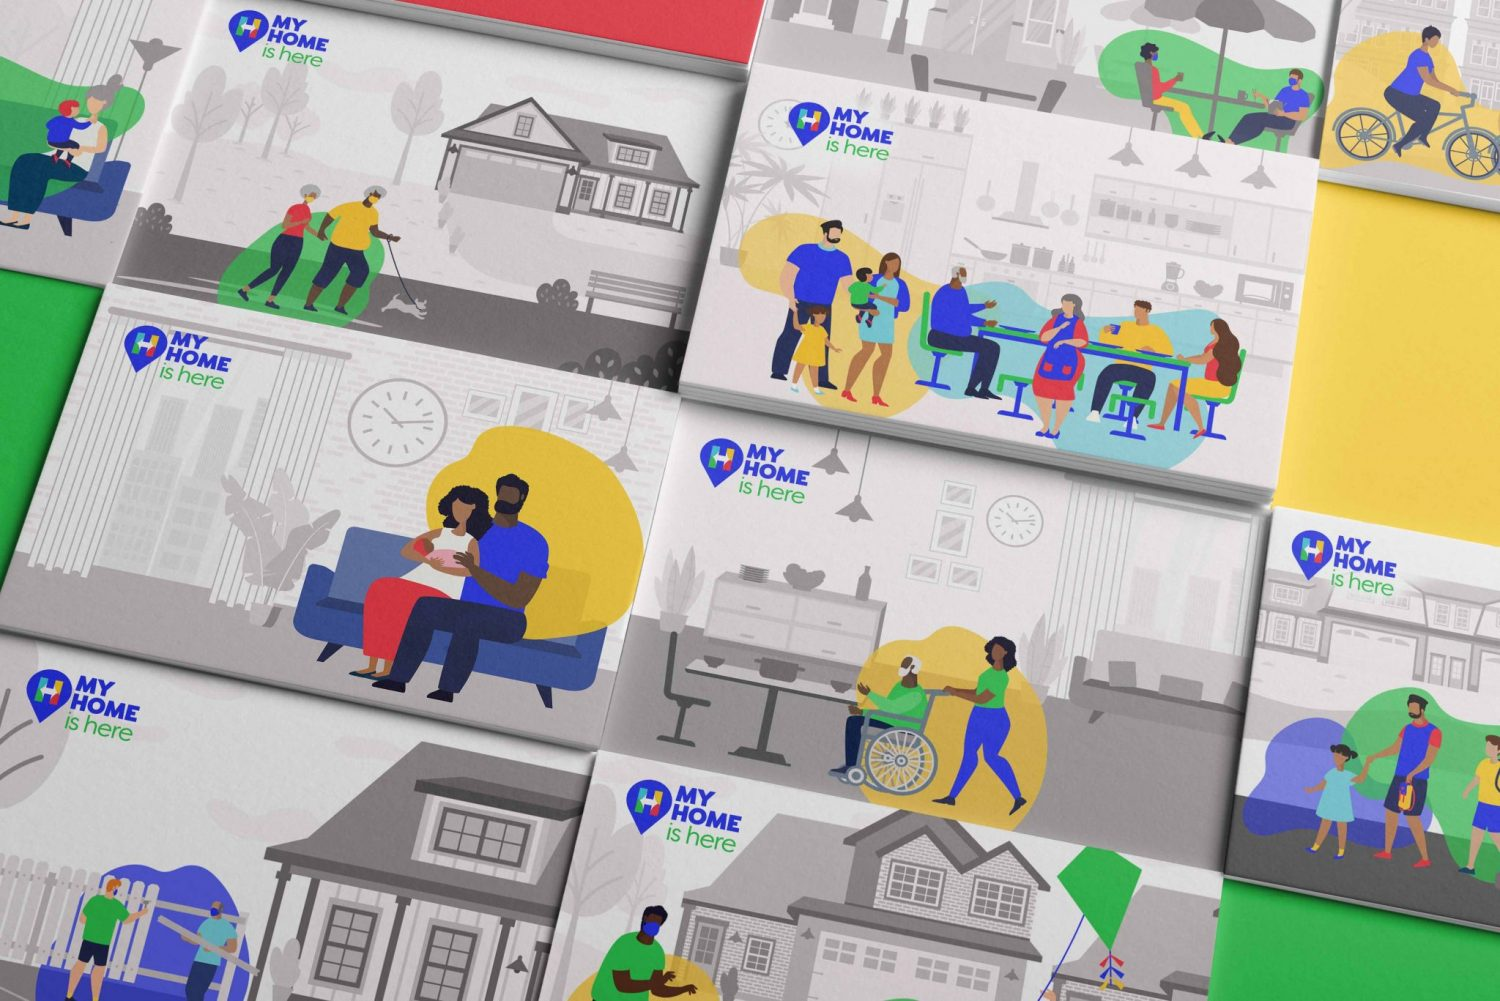 My Home is Here Branding and illustrations Ad By Nicte Creative Design